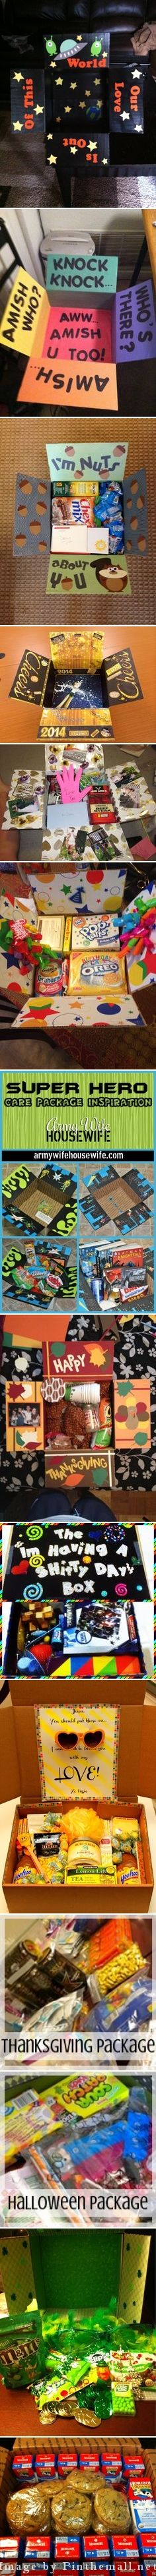 Away from Home Care Packages - created via http://pinthemall.net